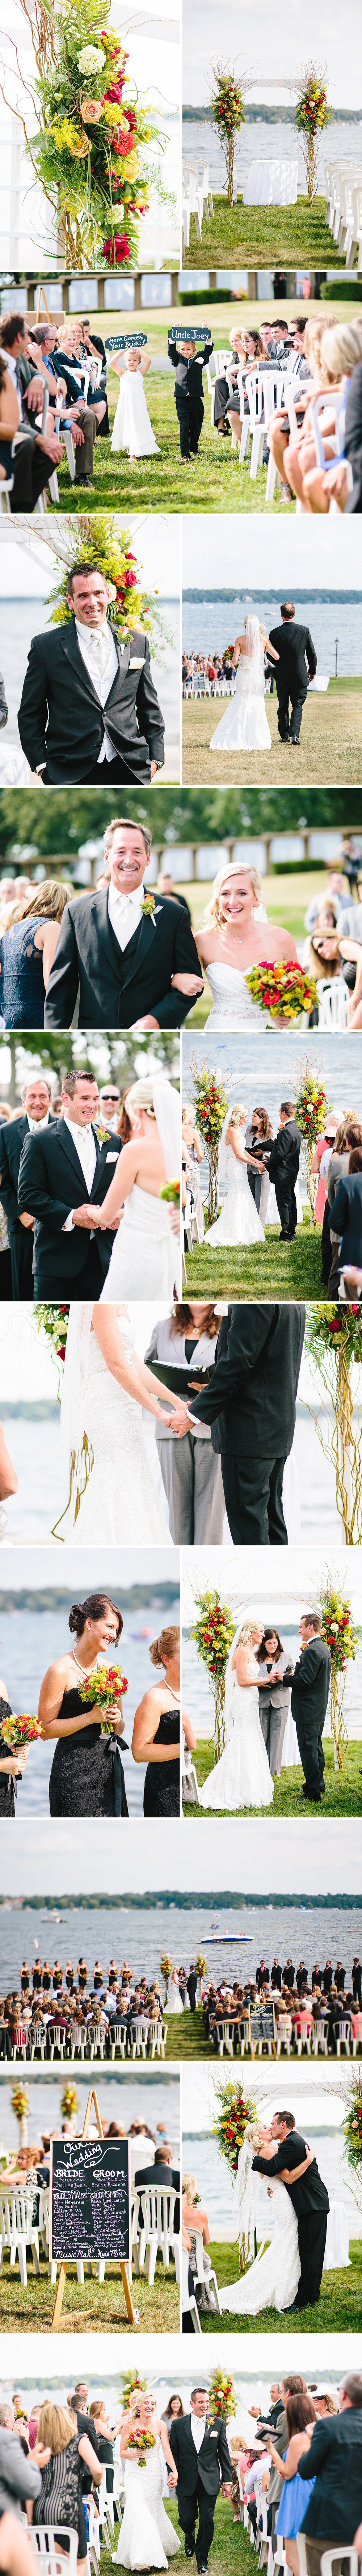 Chicago_Fine_Art_Wedding_Photography_kopecky2.jpg